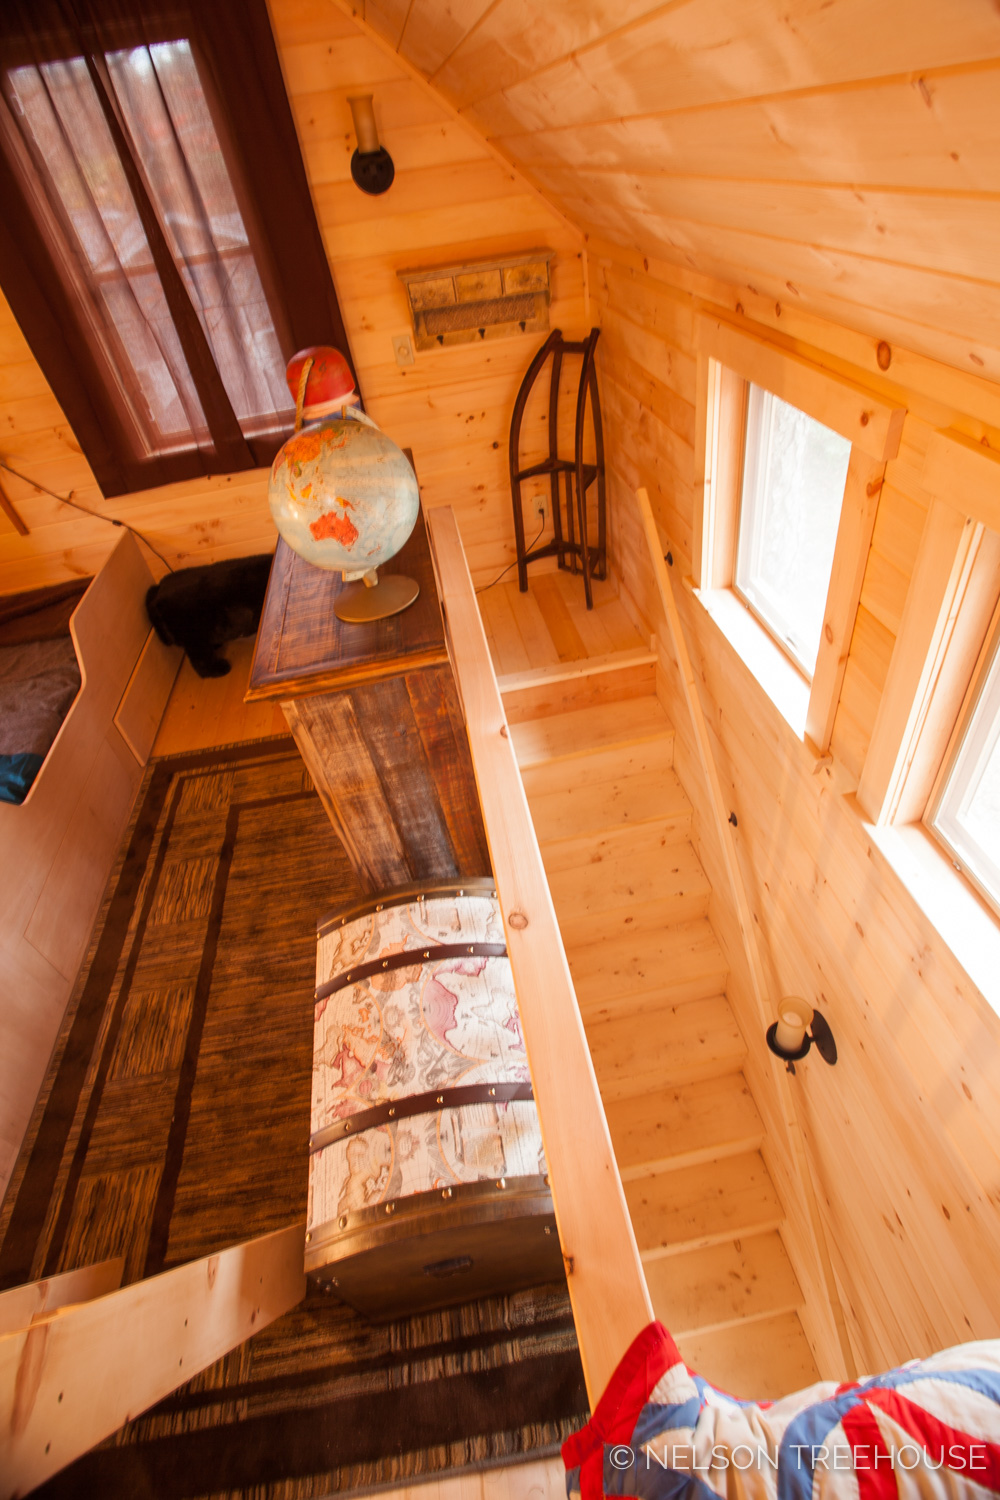 Nelson Treehouse - Adventure TEmple Staircase to bunk loft